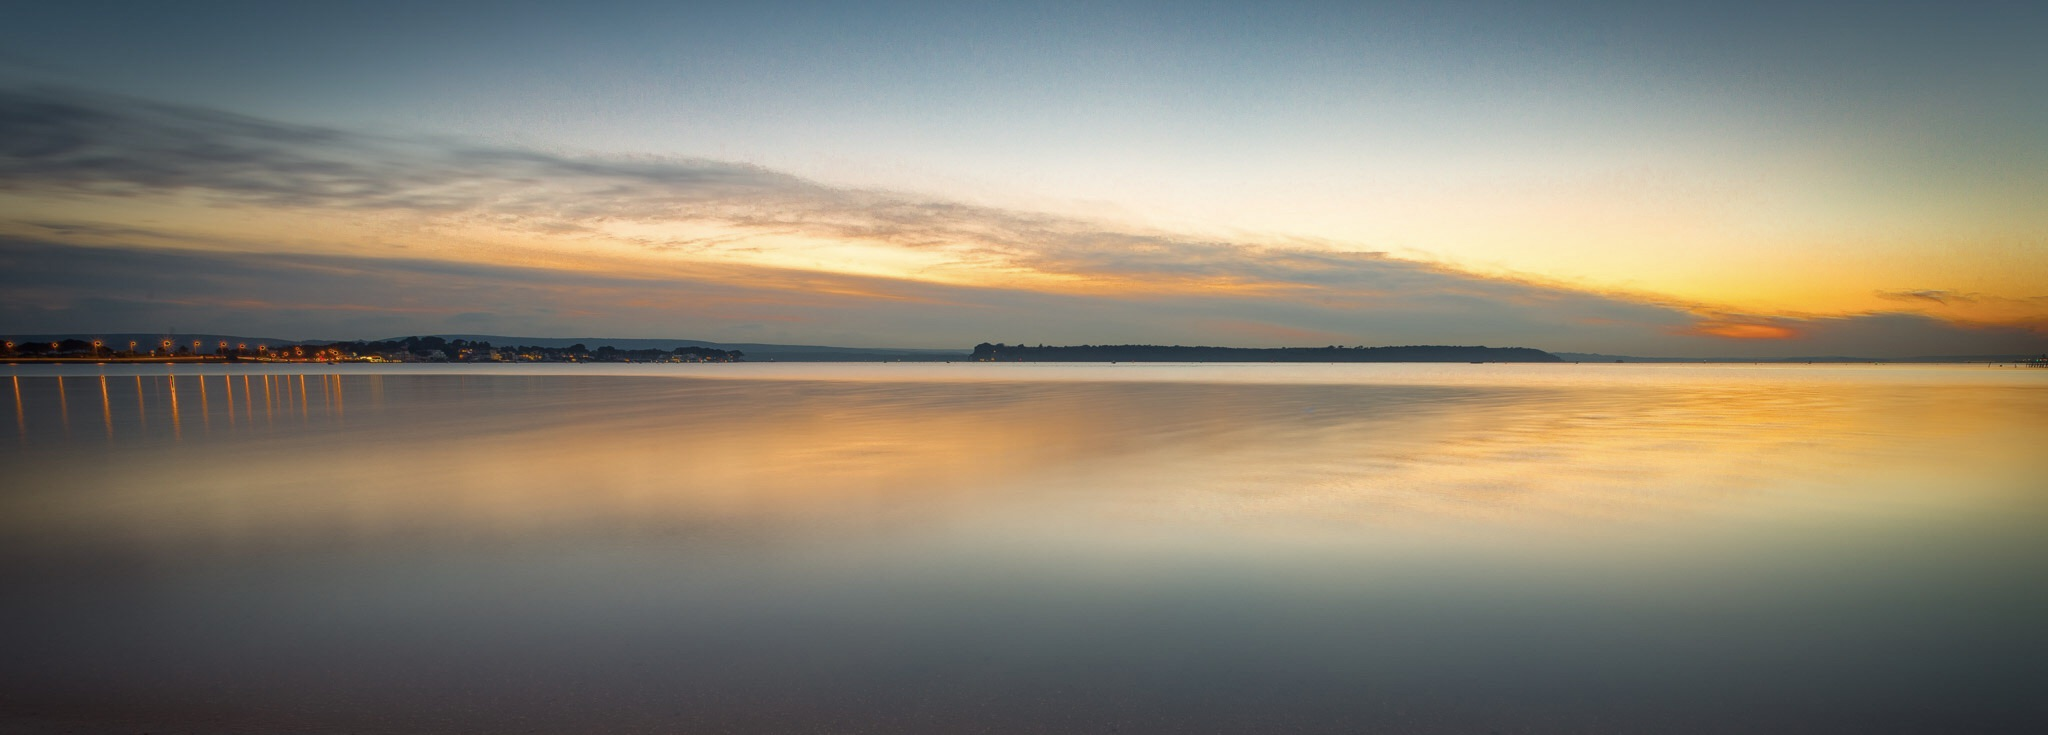 Panoramic sunset picture of Brownsea Island